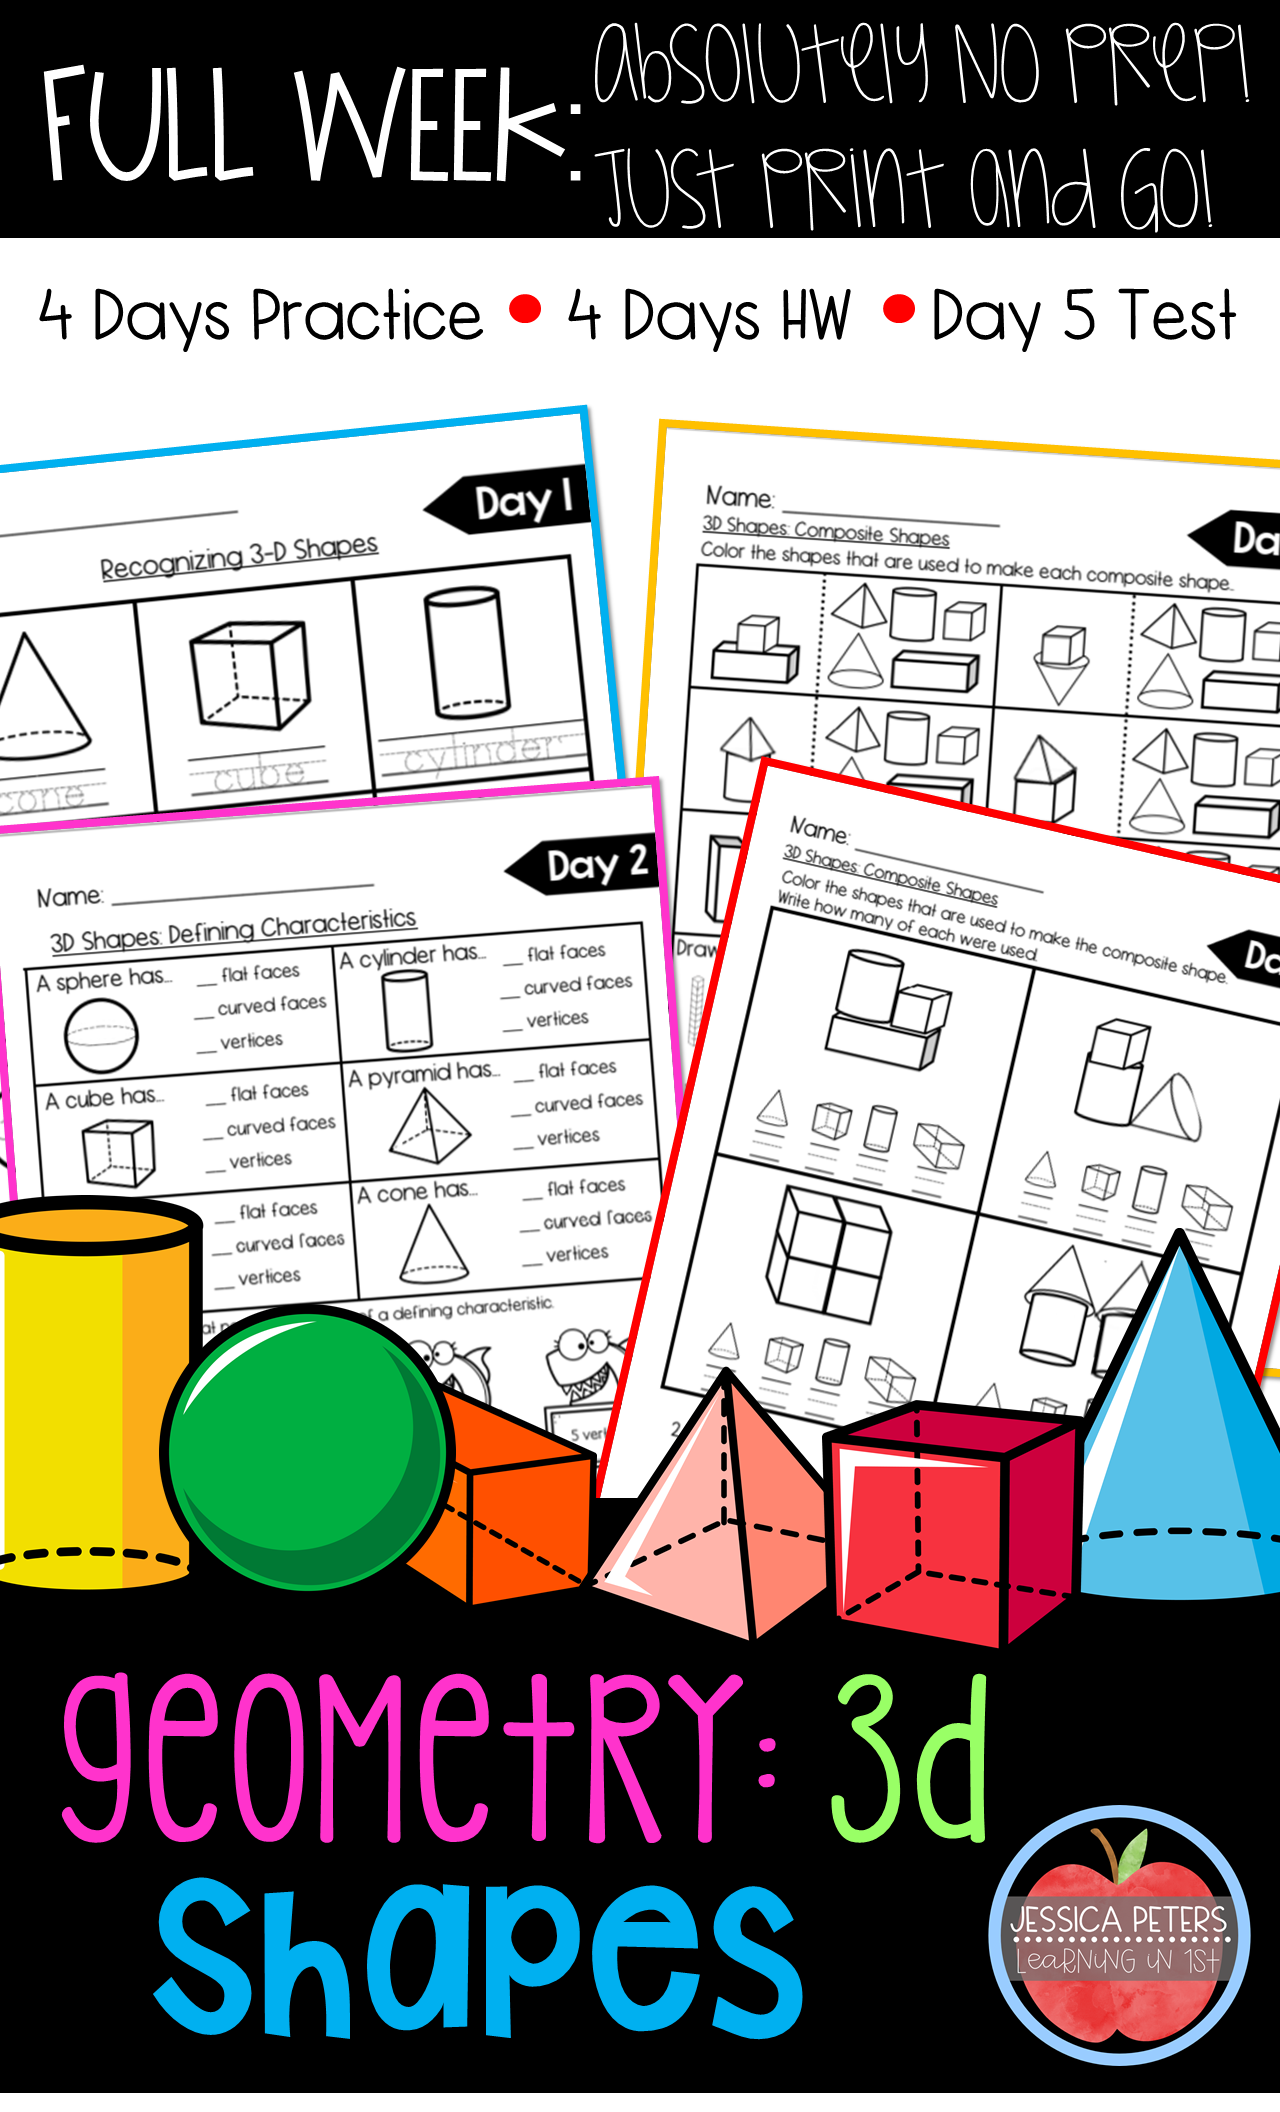 2 And 3 Dimensional Shapes Worksheet For First Grade   Printable Worksheets  and Activities for Teachers [ 2112 x 1280 Pixel ]